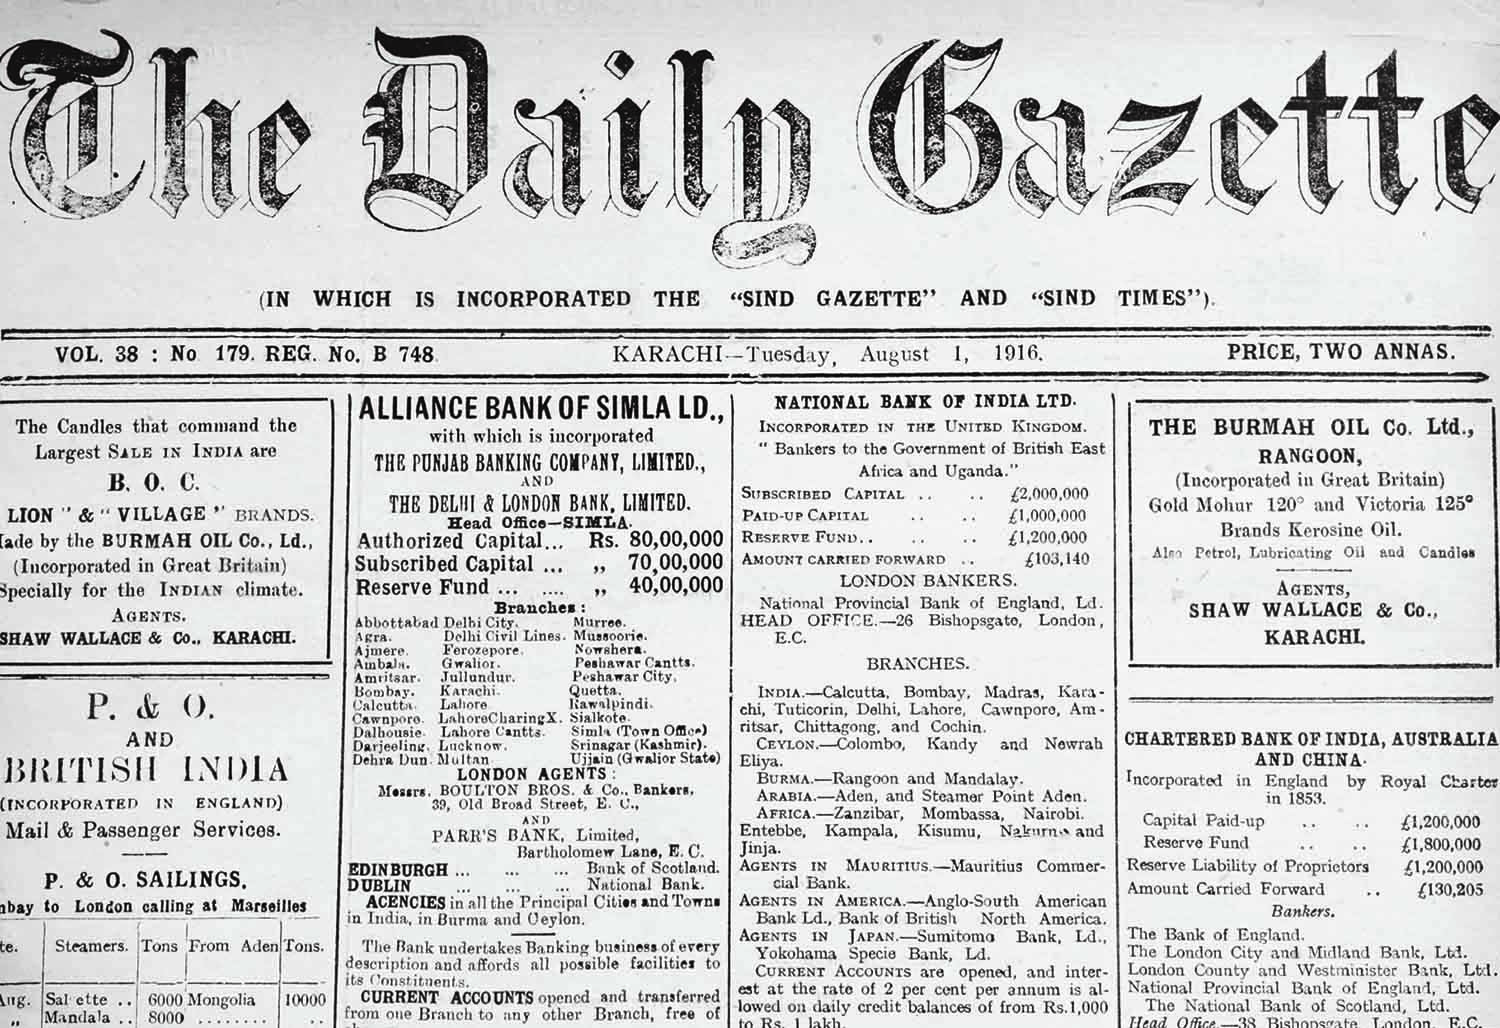 In 1915, the name of The Civil and Military Gazette was changed to The Daily Gazette.